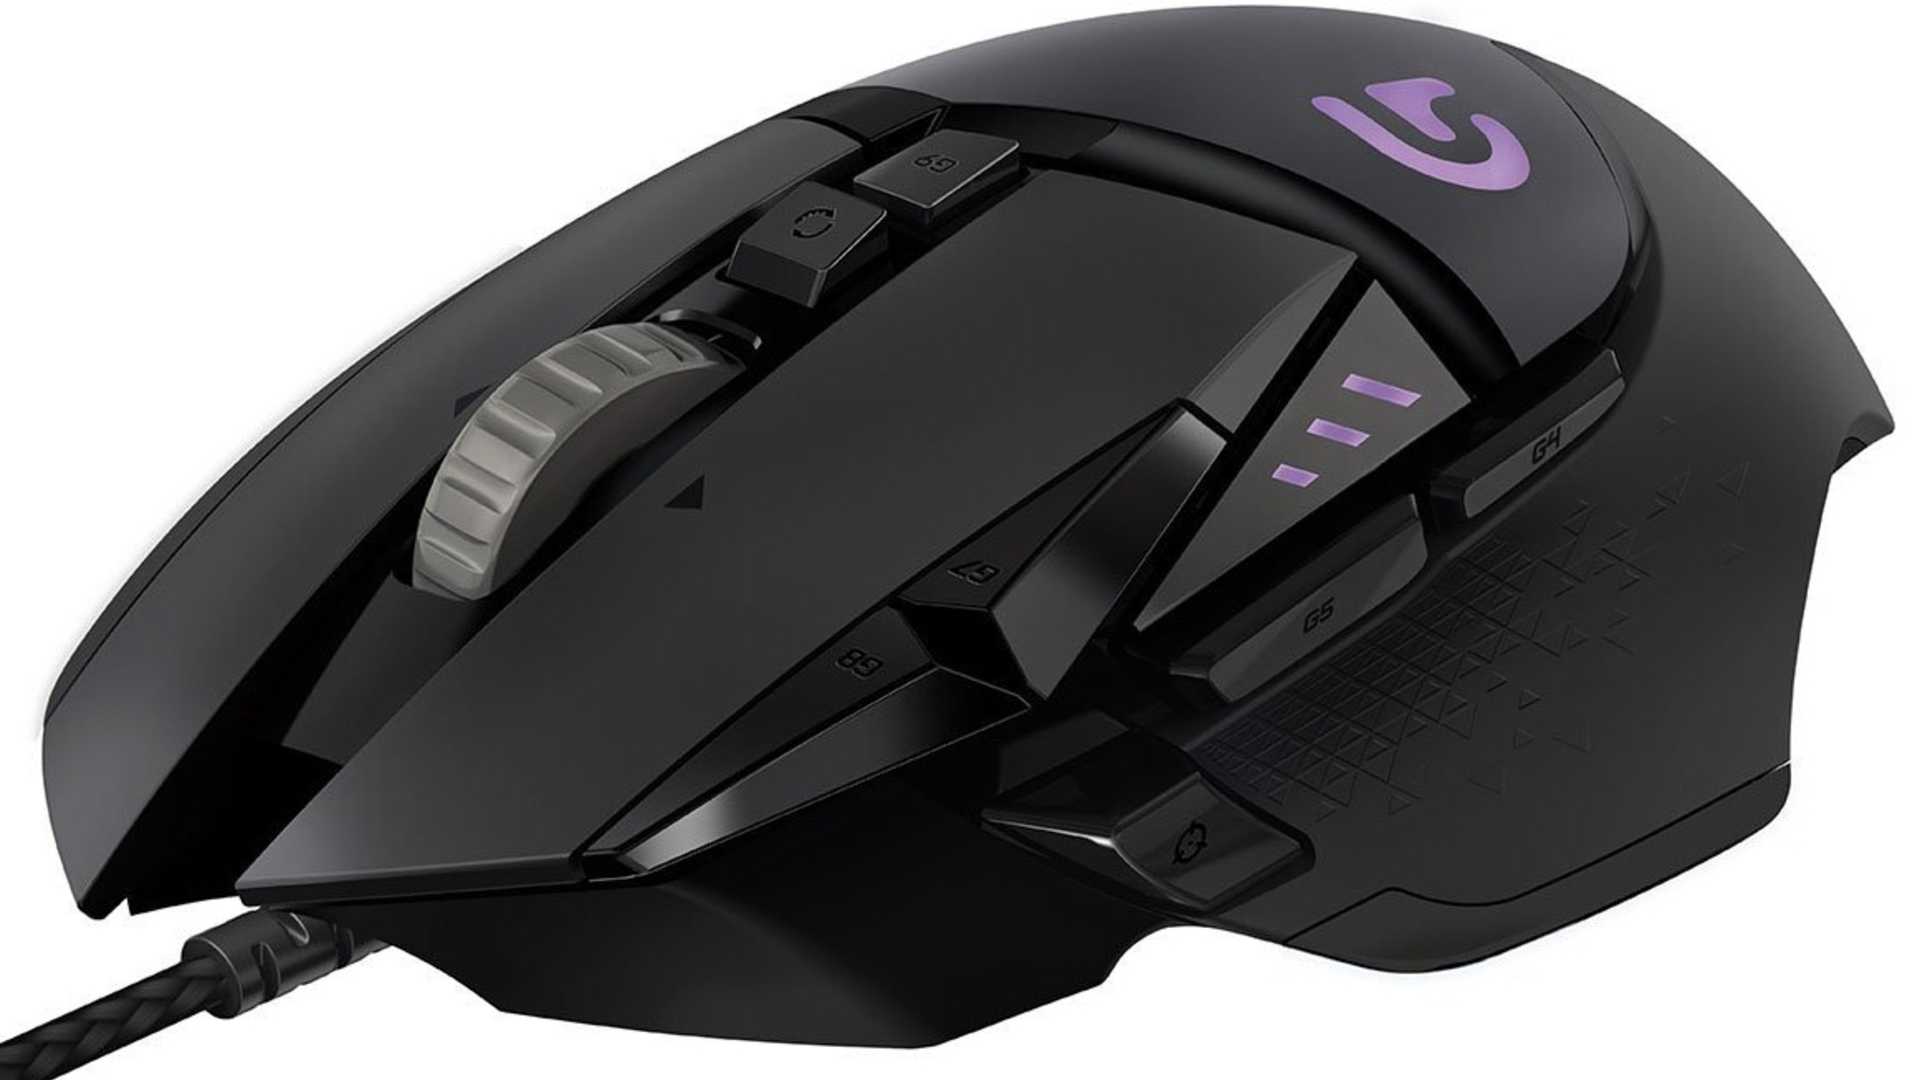 Black Friday Angebot Black Friday Angebot Logitech G502 Gaming Maus Proteus